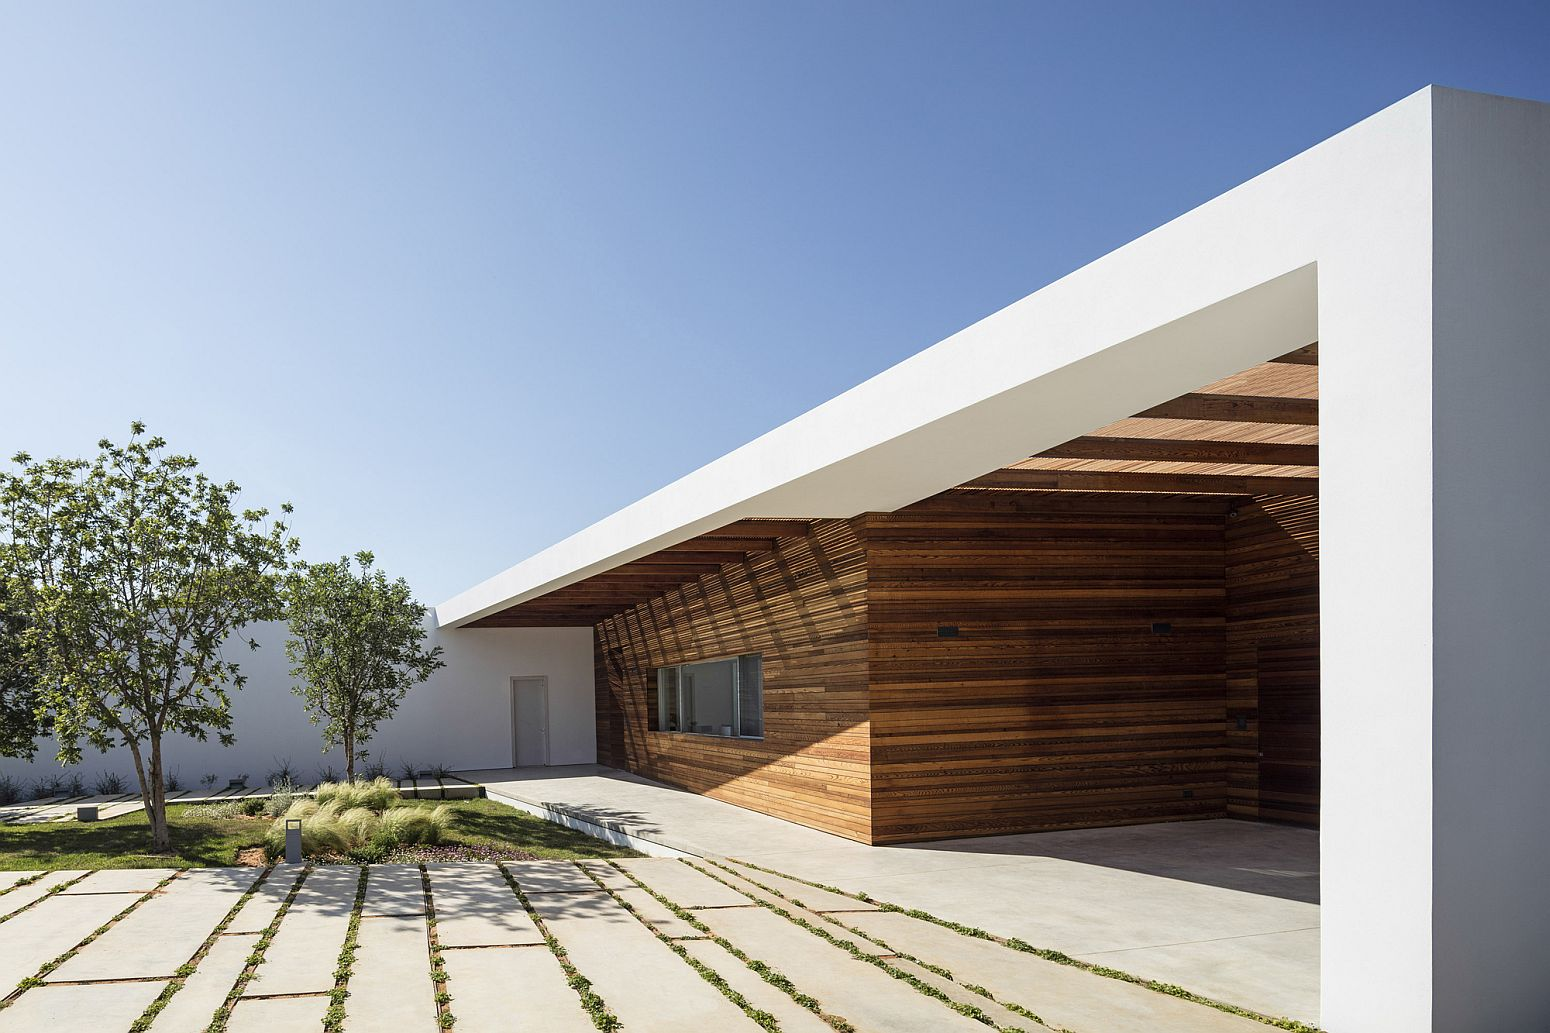 Organic structure of the house keeps out heat and offers natural shade